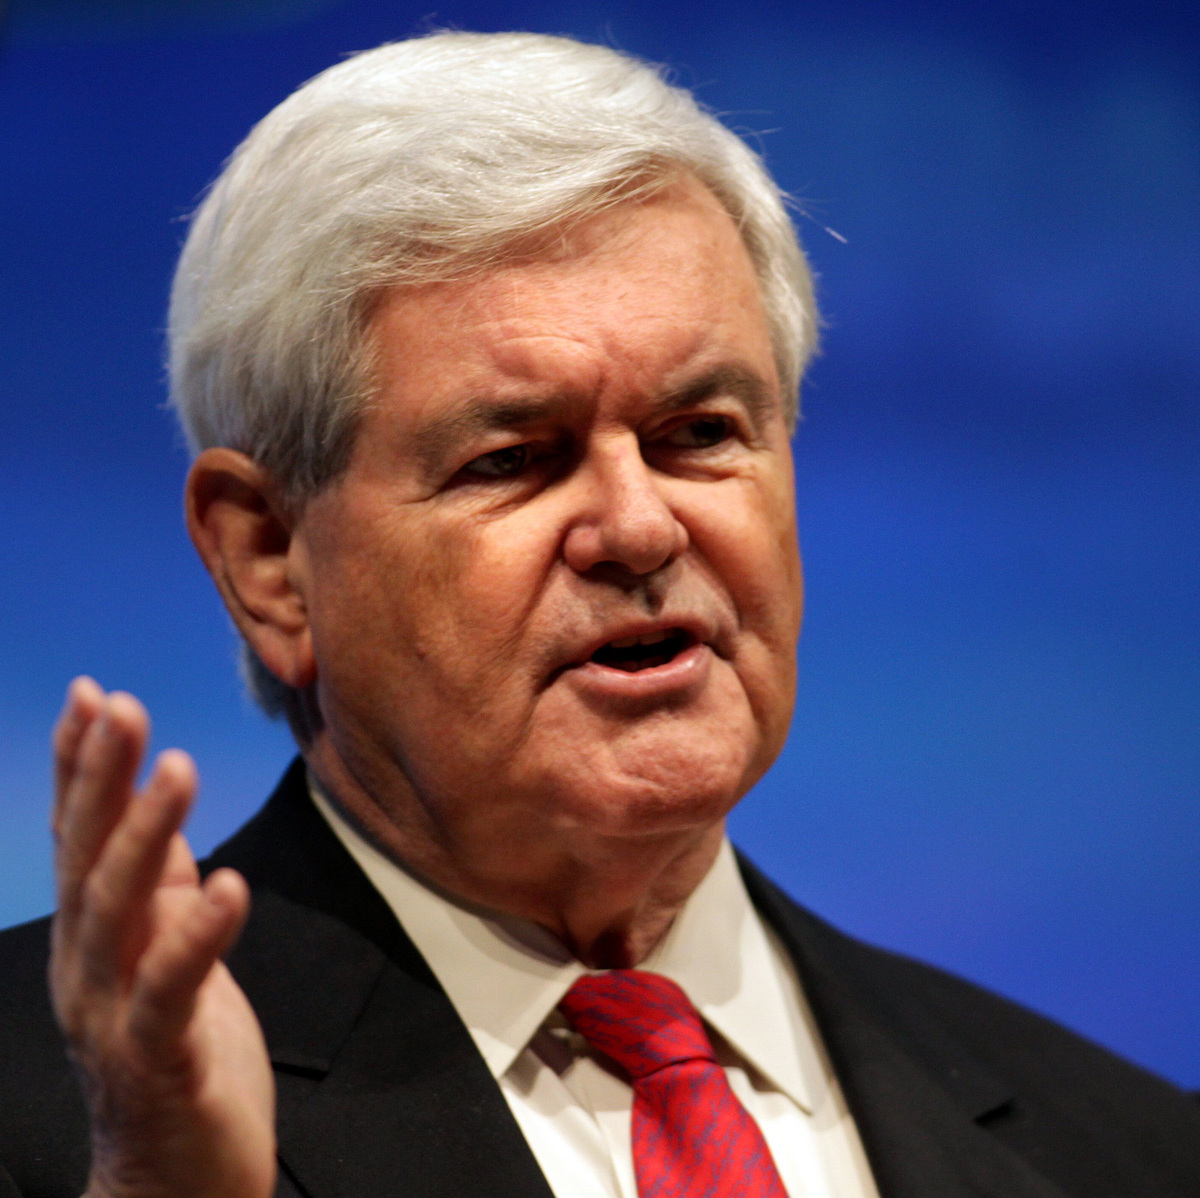 Gingrich Cautions GOP About 'Overreach' On Scandals : The